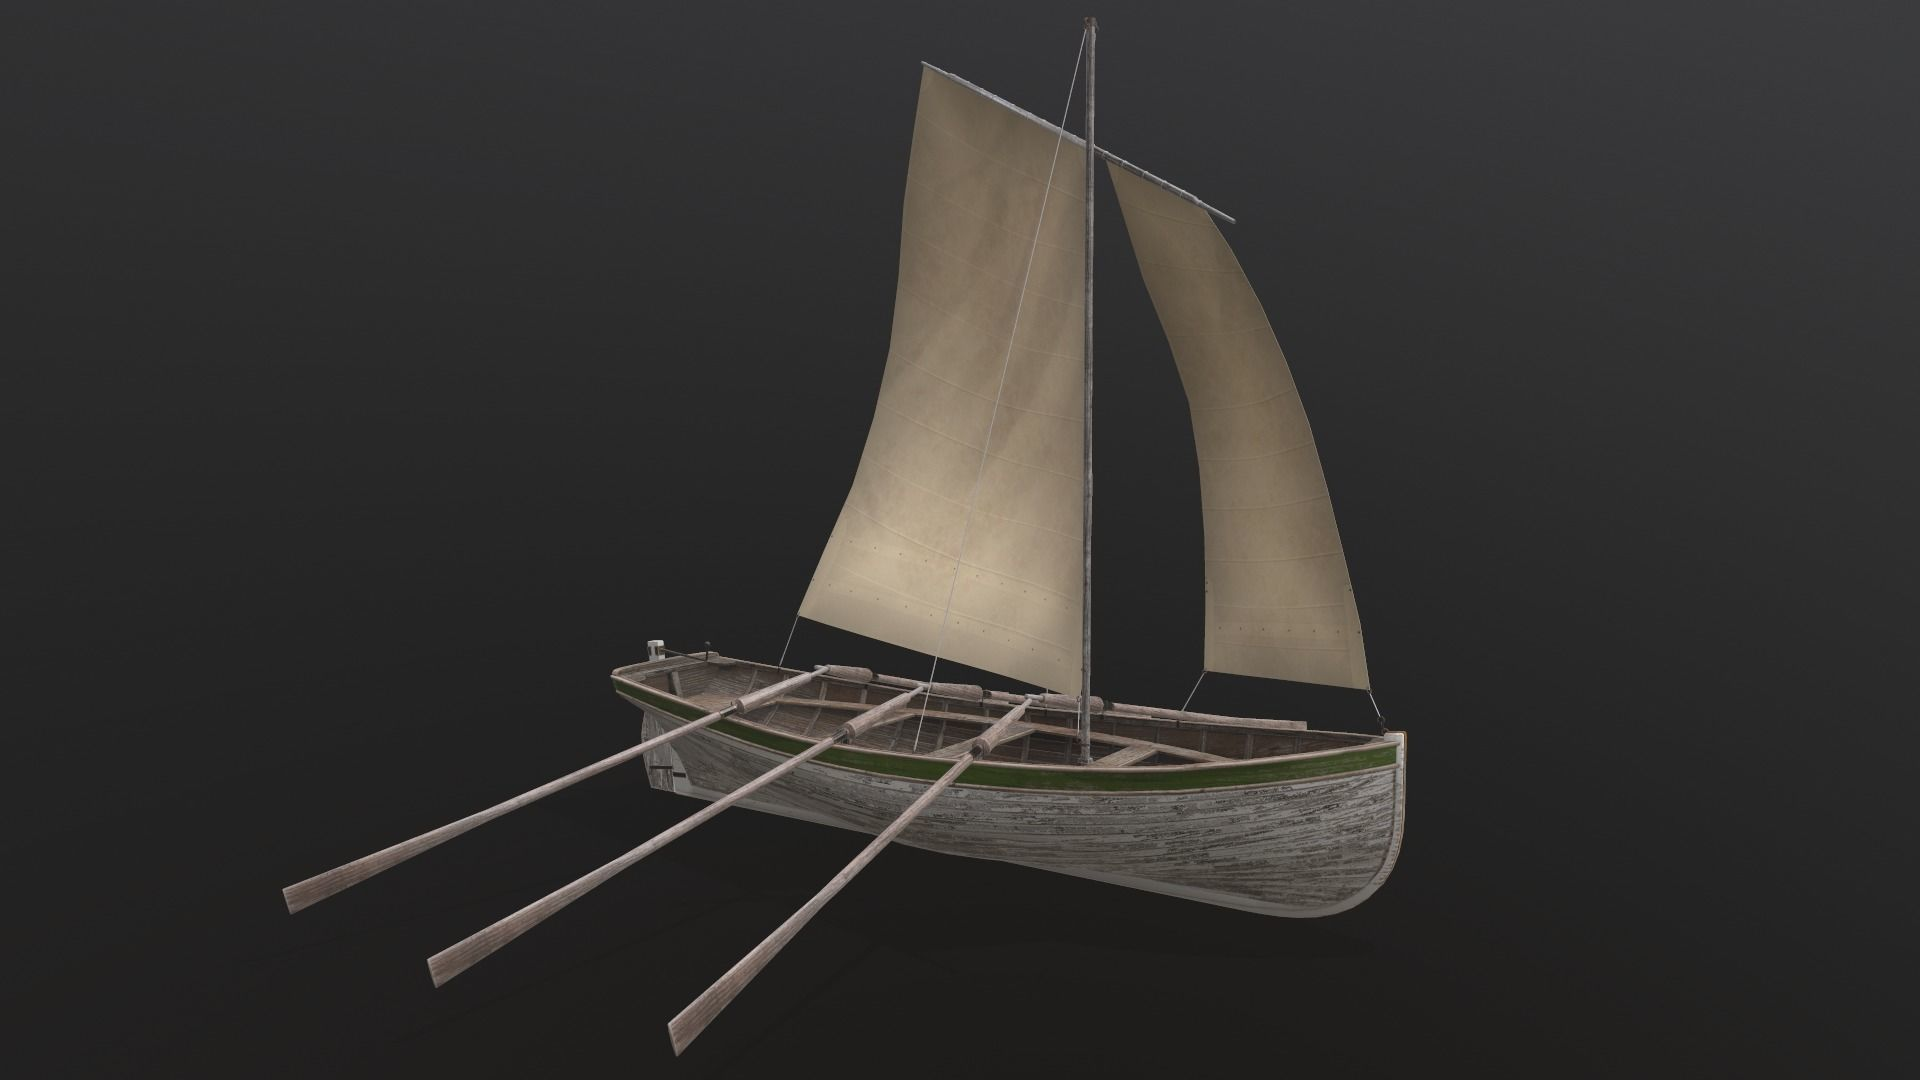 Old wooden boat Yal-6